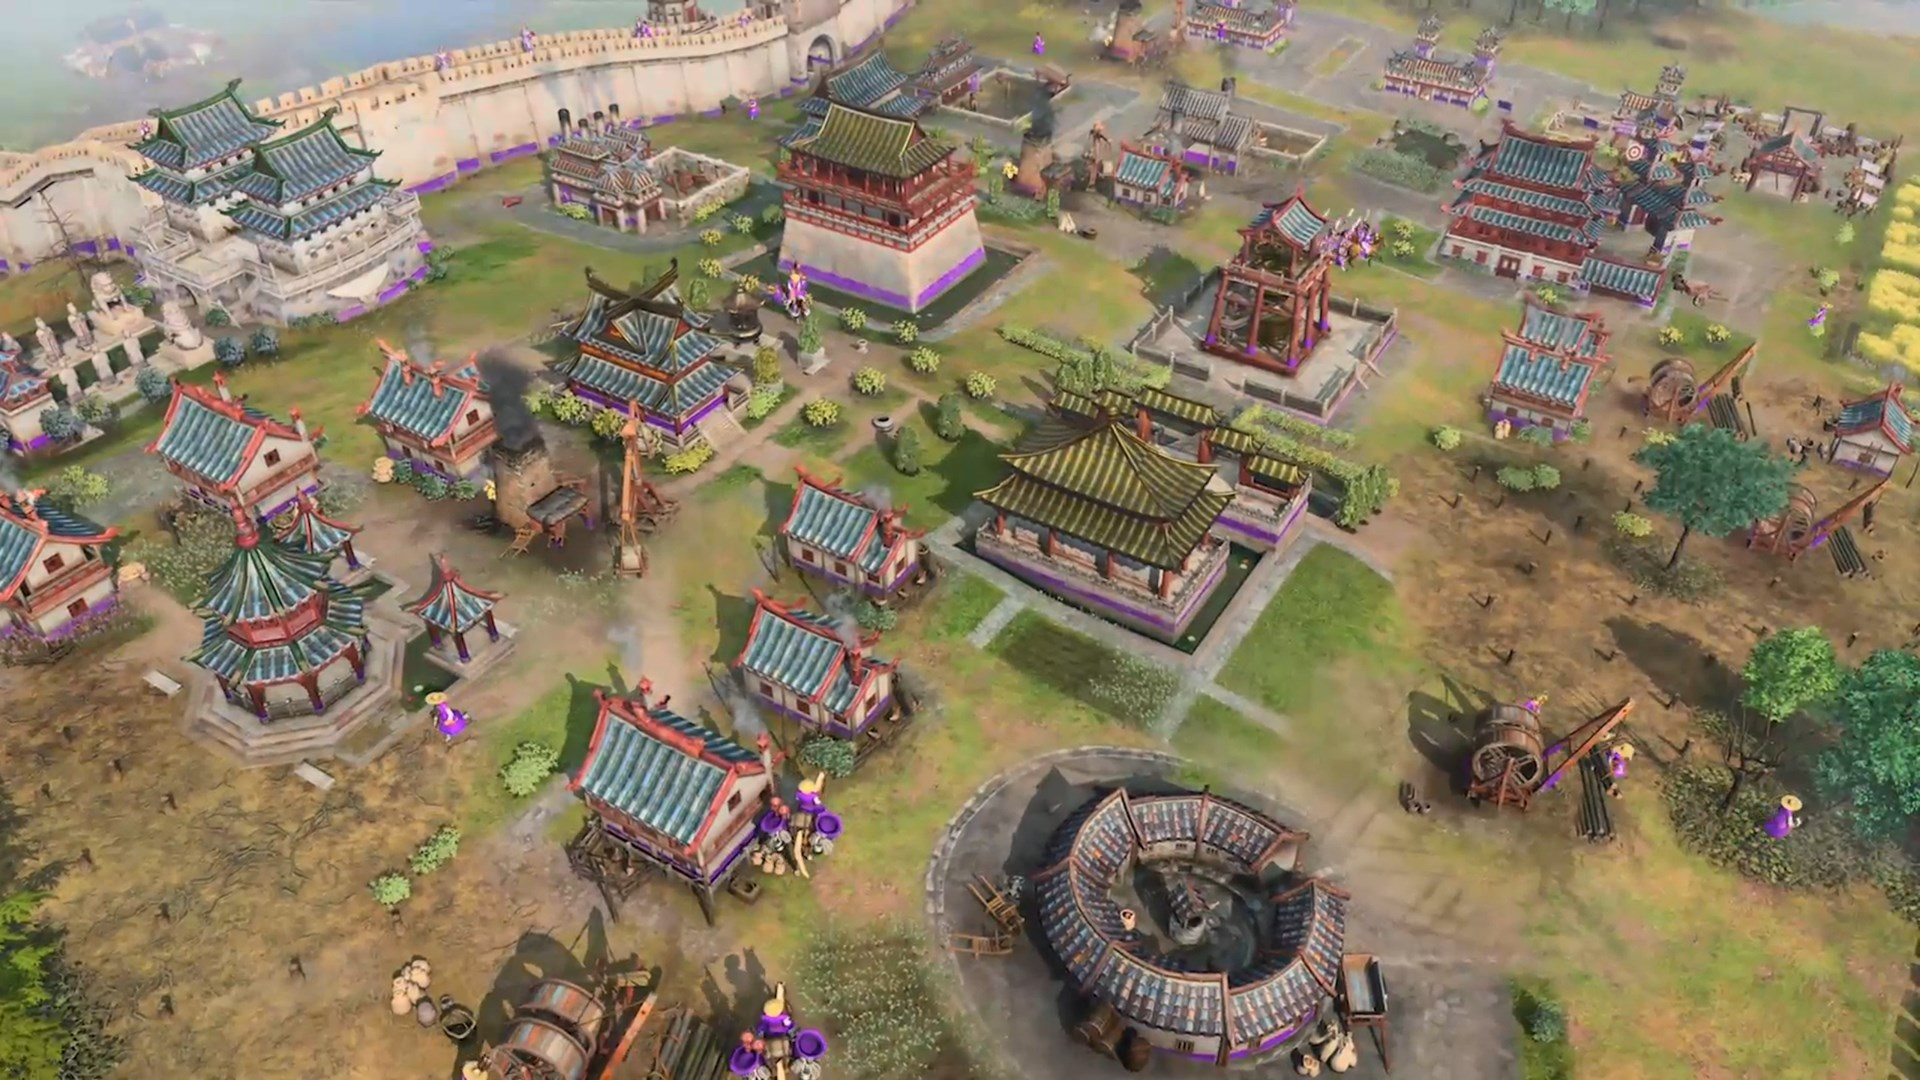 City in Age of Empires IV